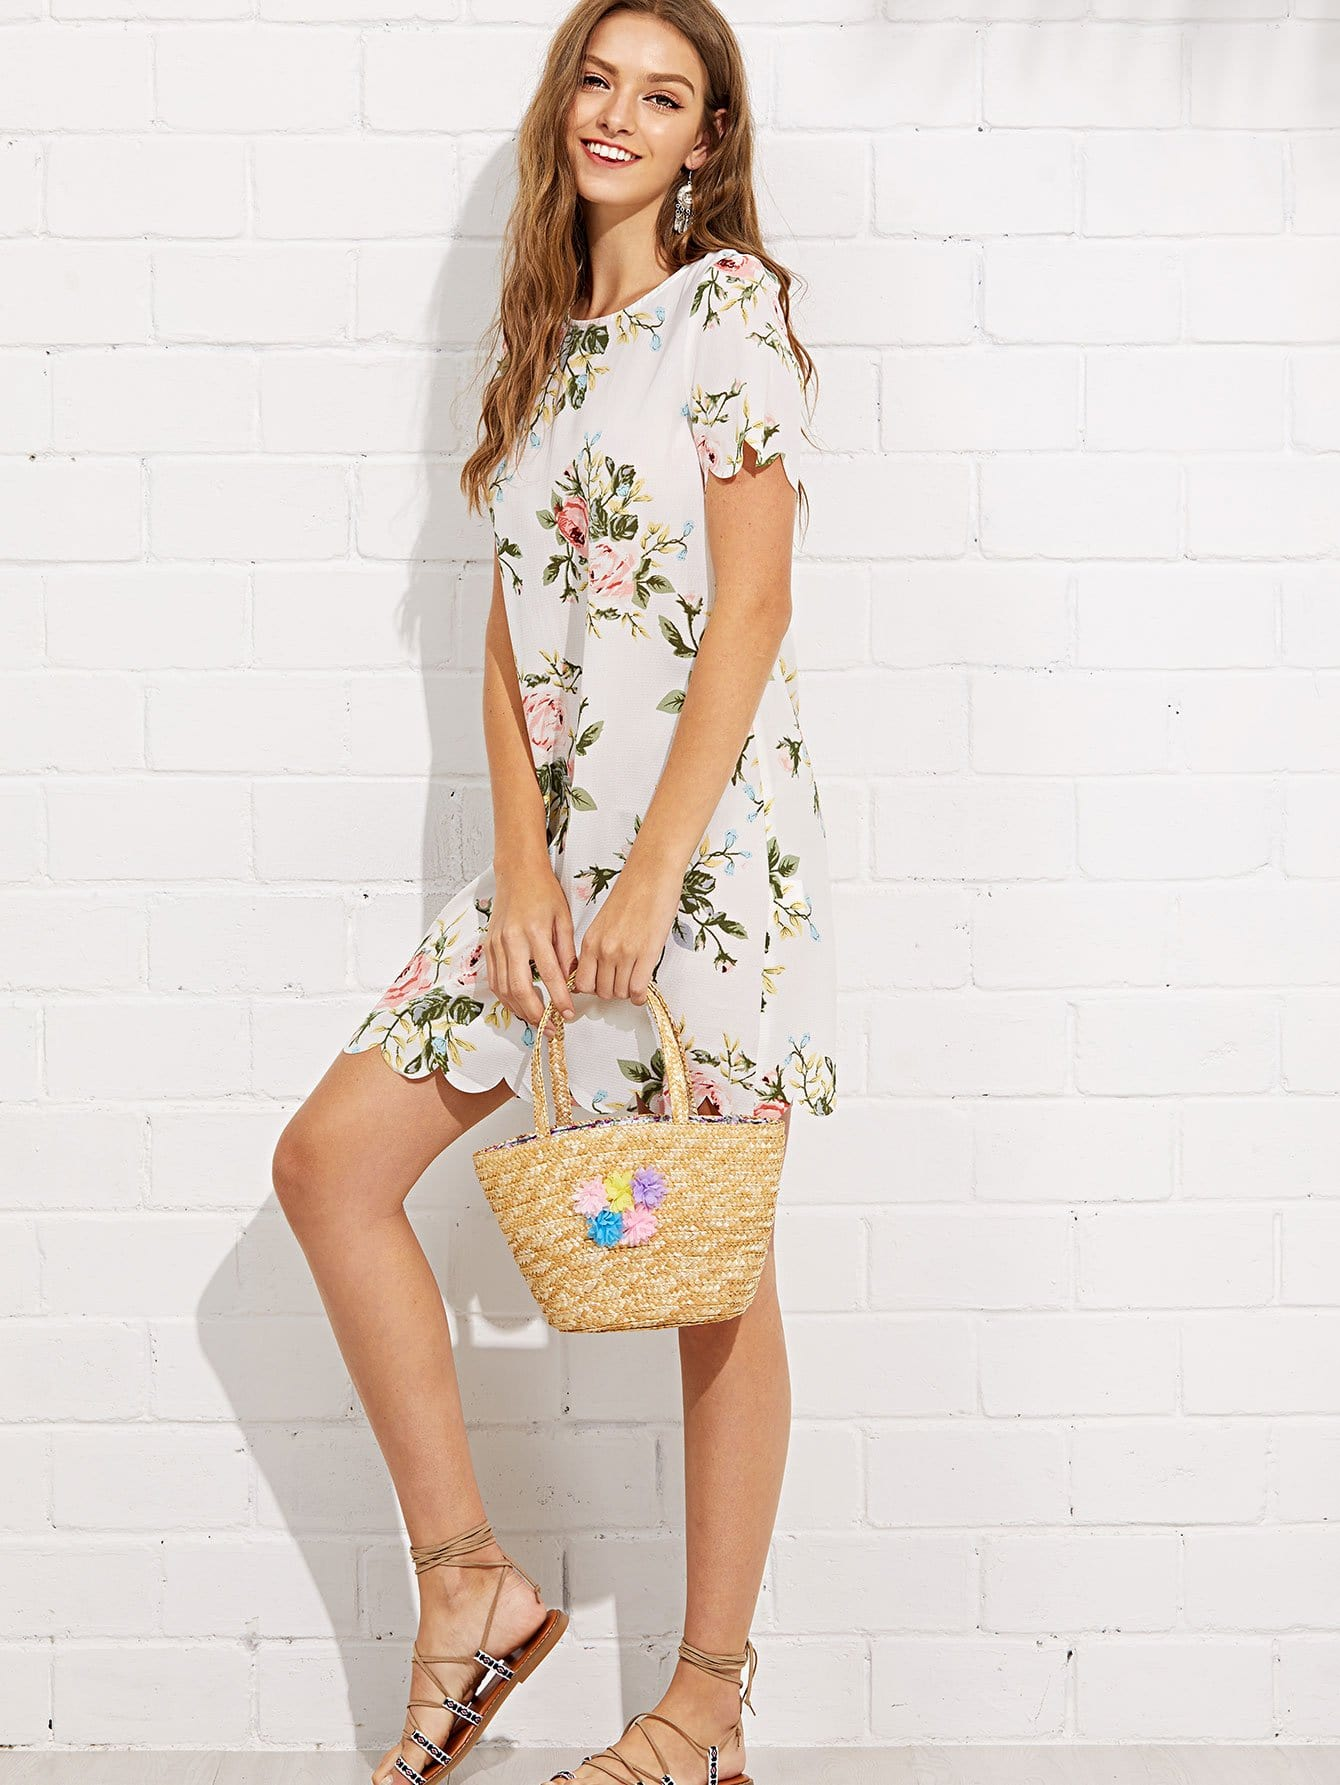 Flower Decorated Straw Bag